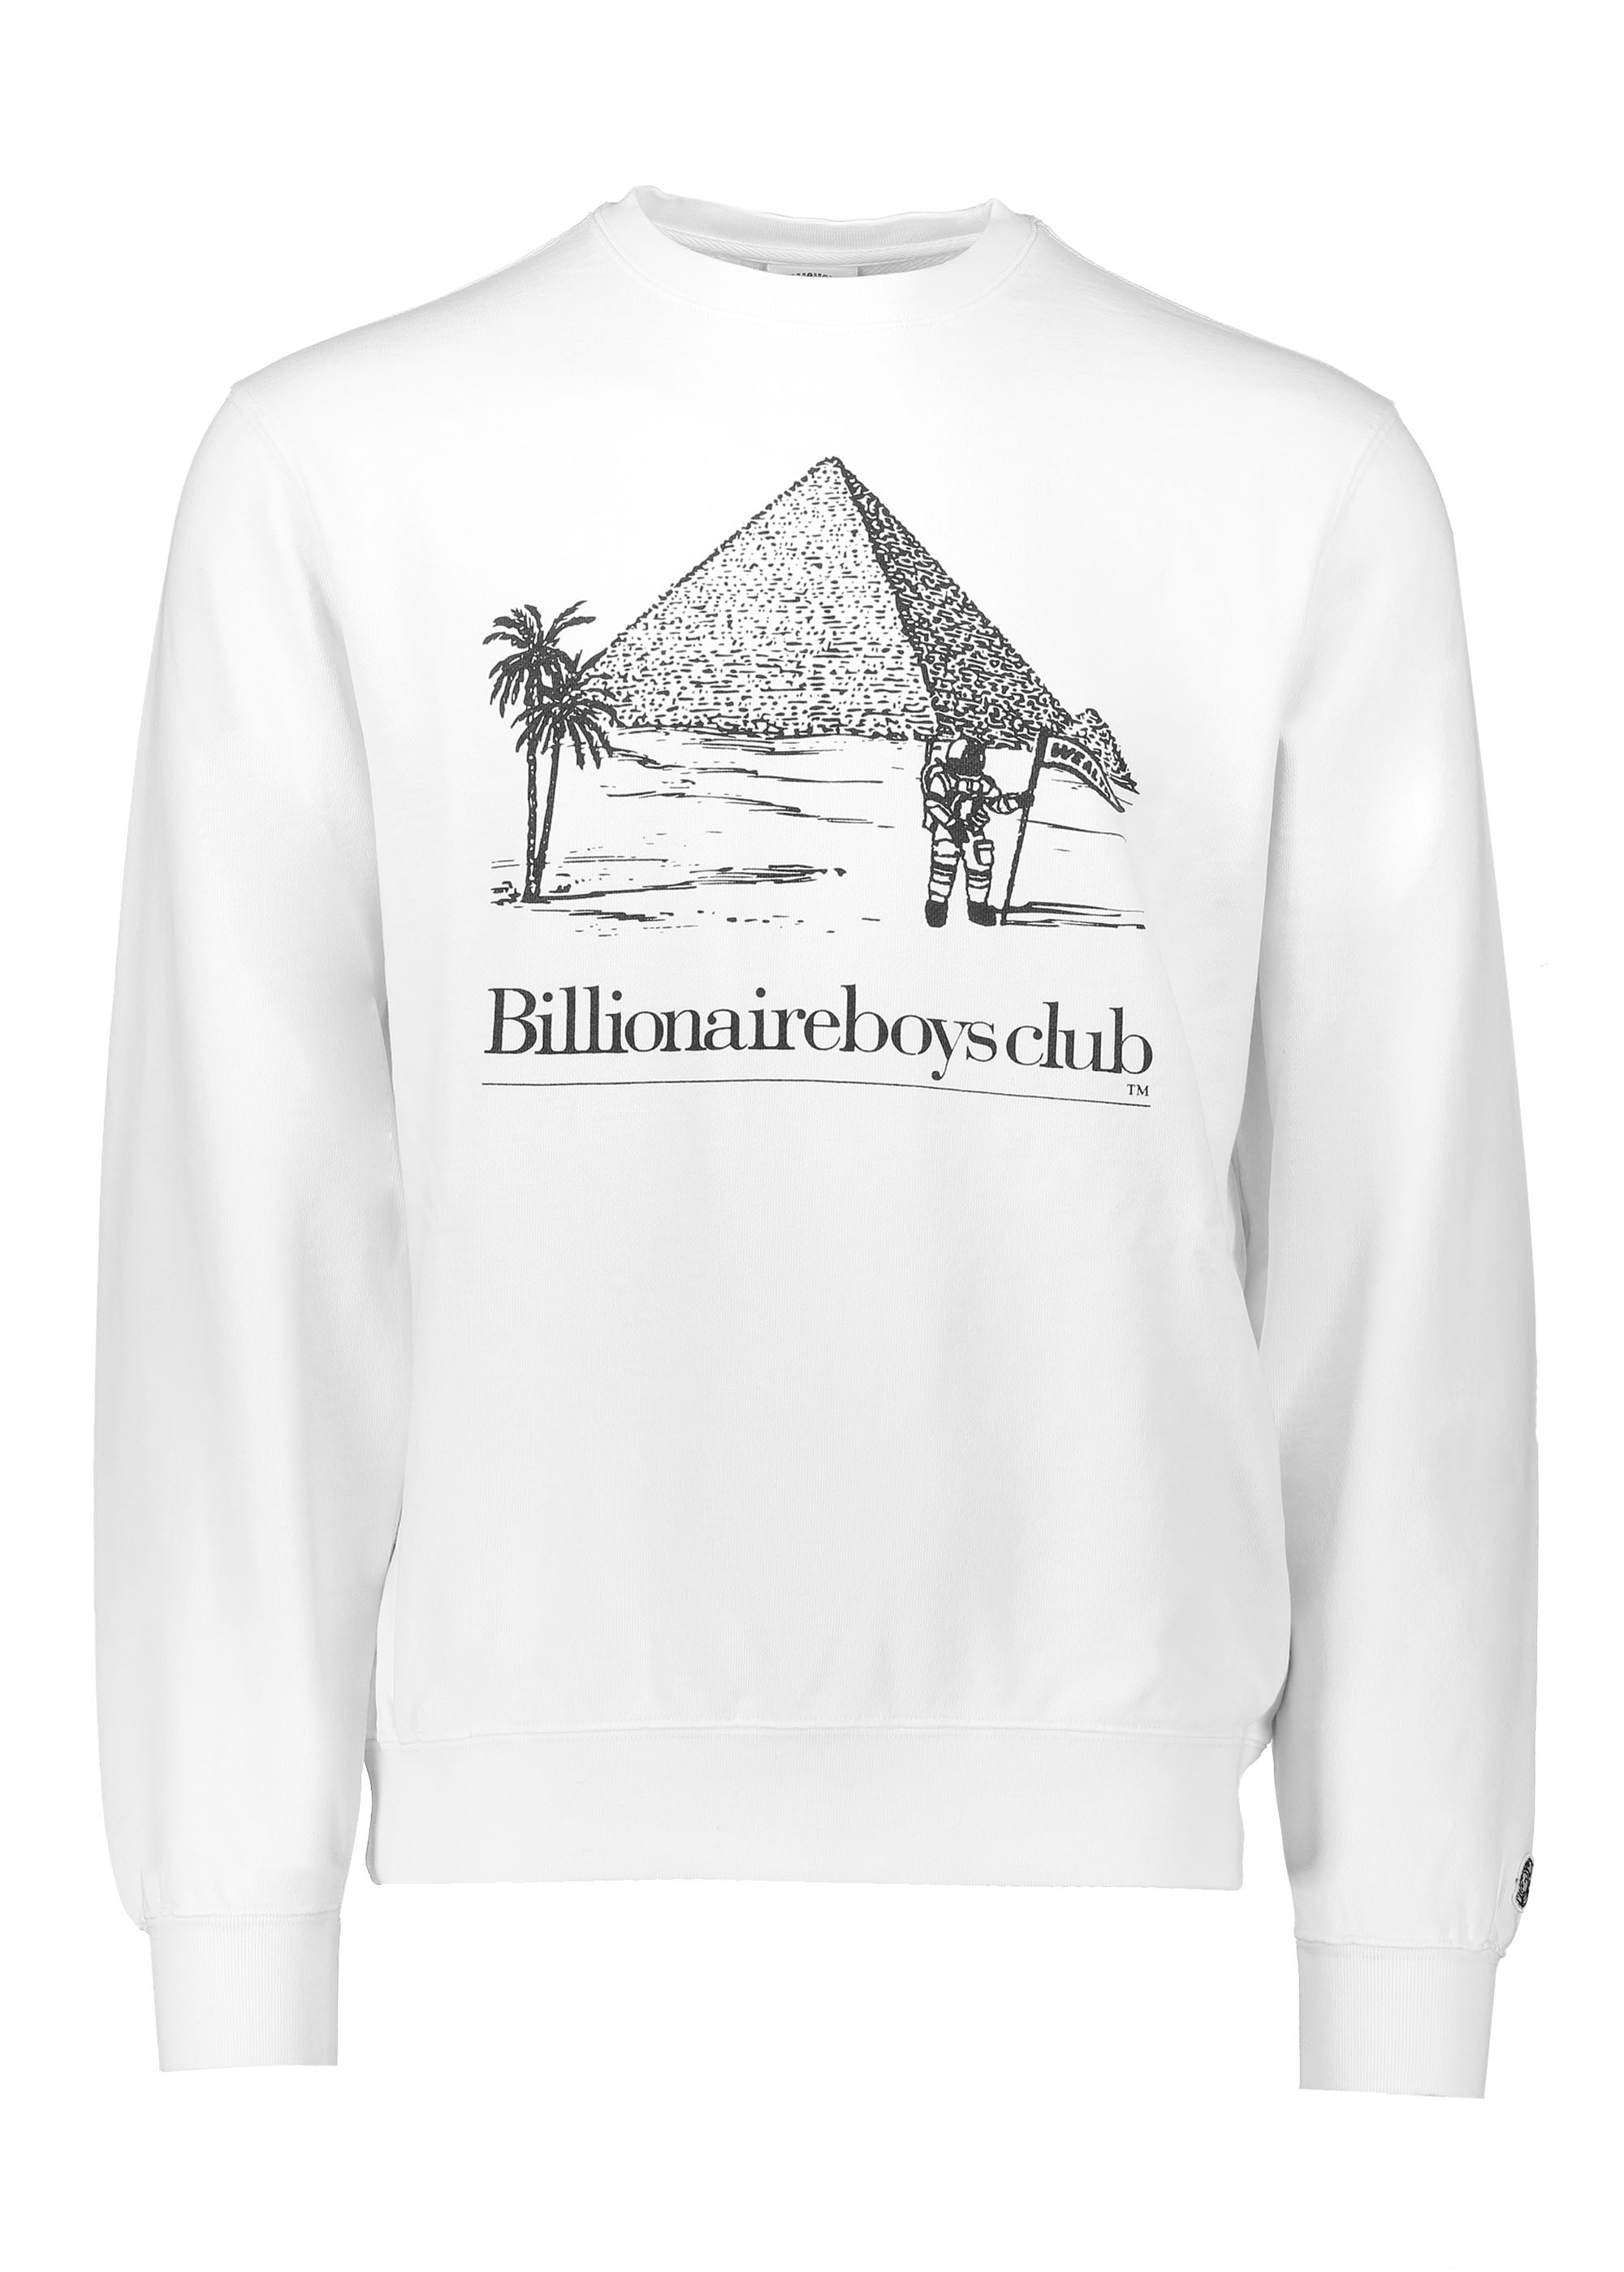 Billionaire Boys Club Pyramid Crew Neck - White - Sweatshirts from ... 79933593c99